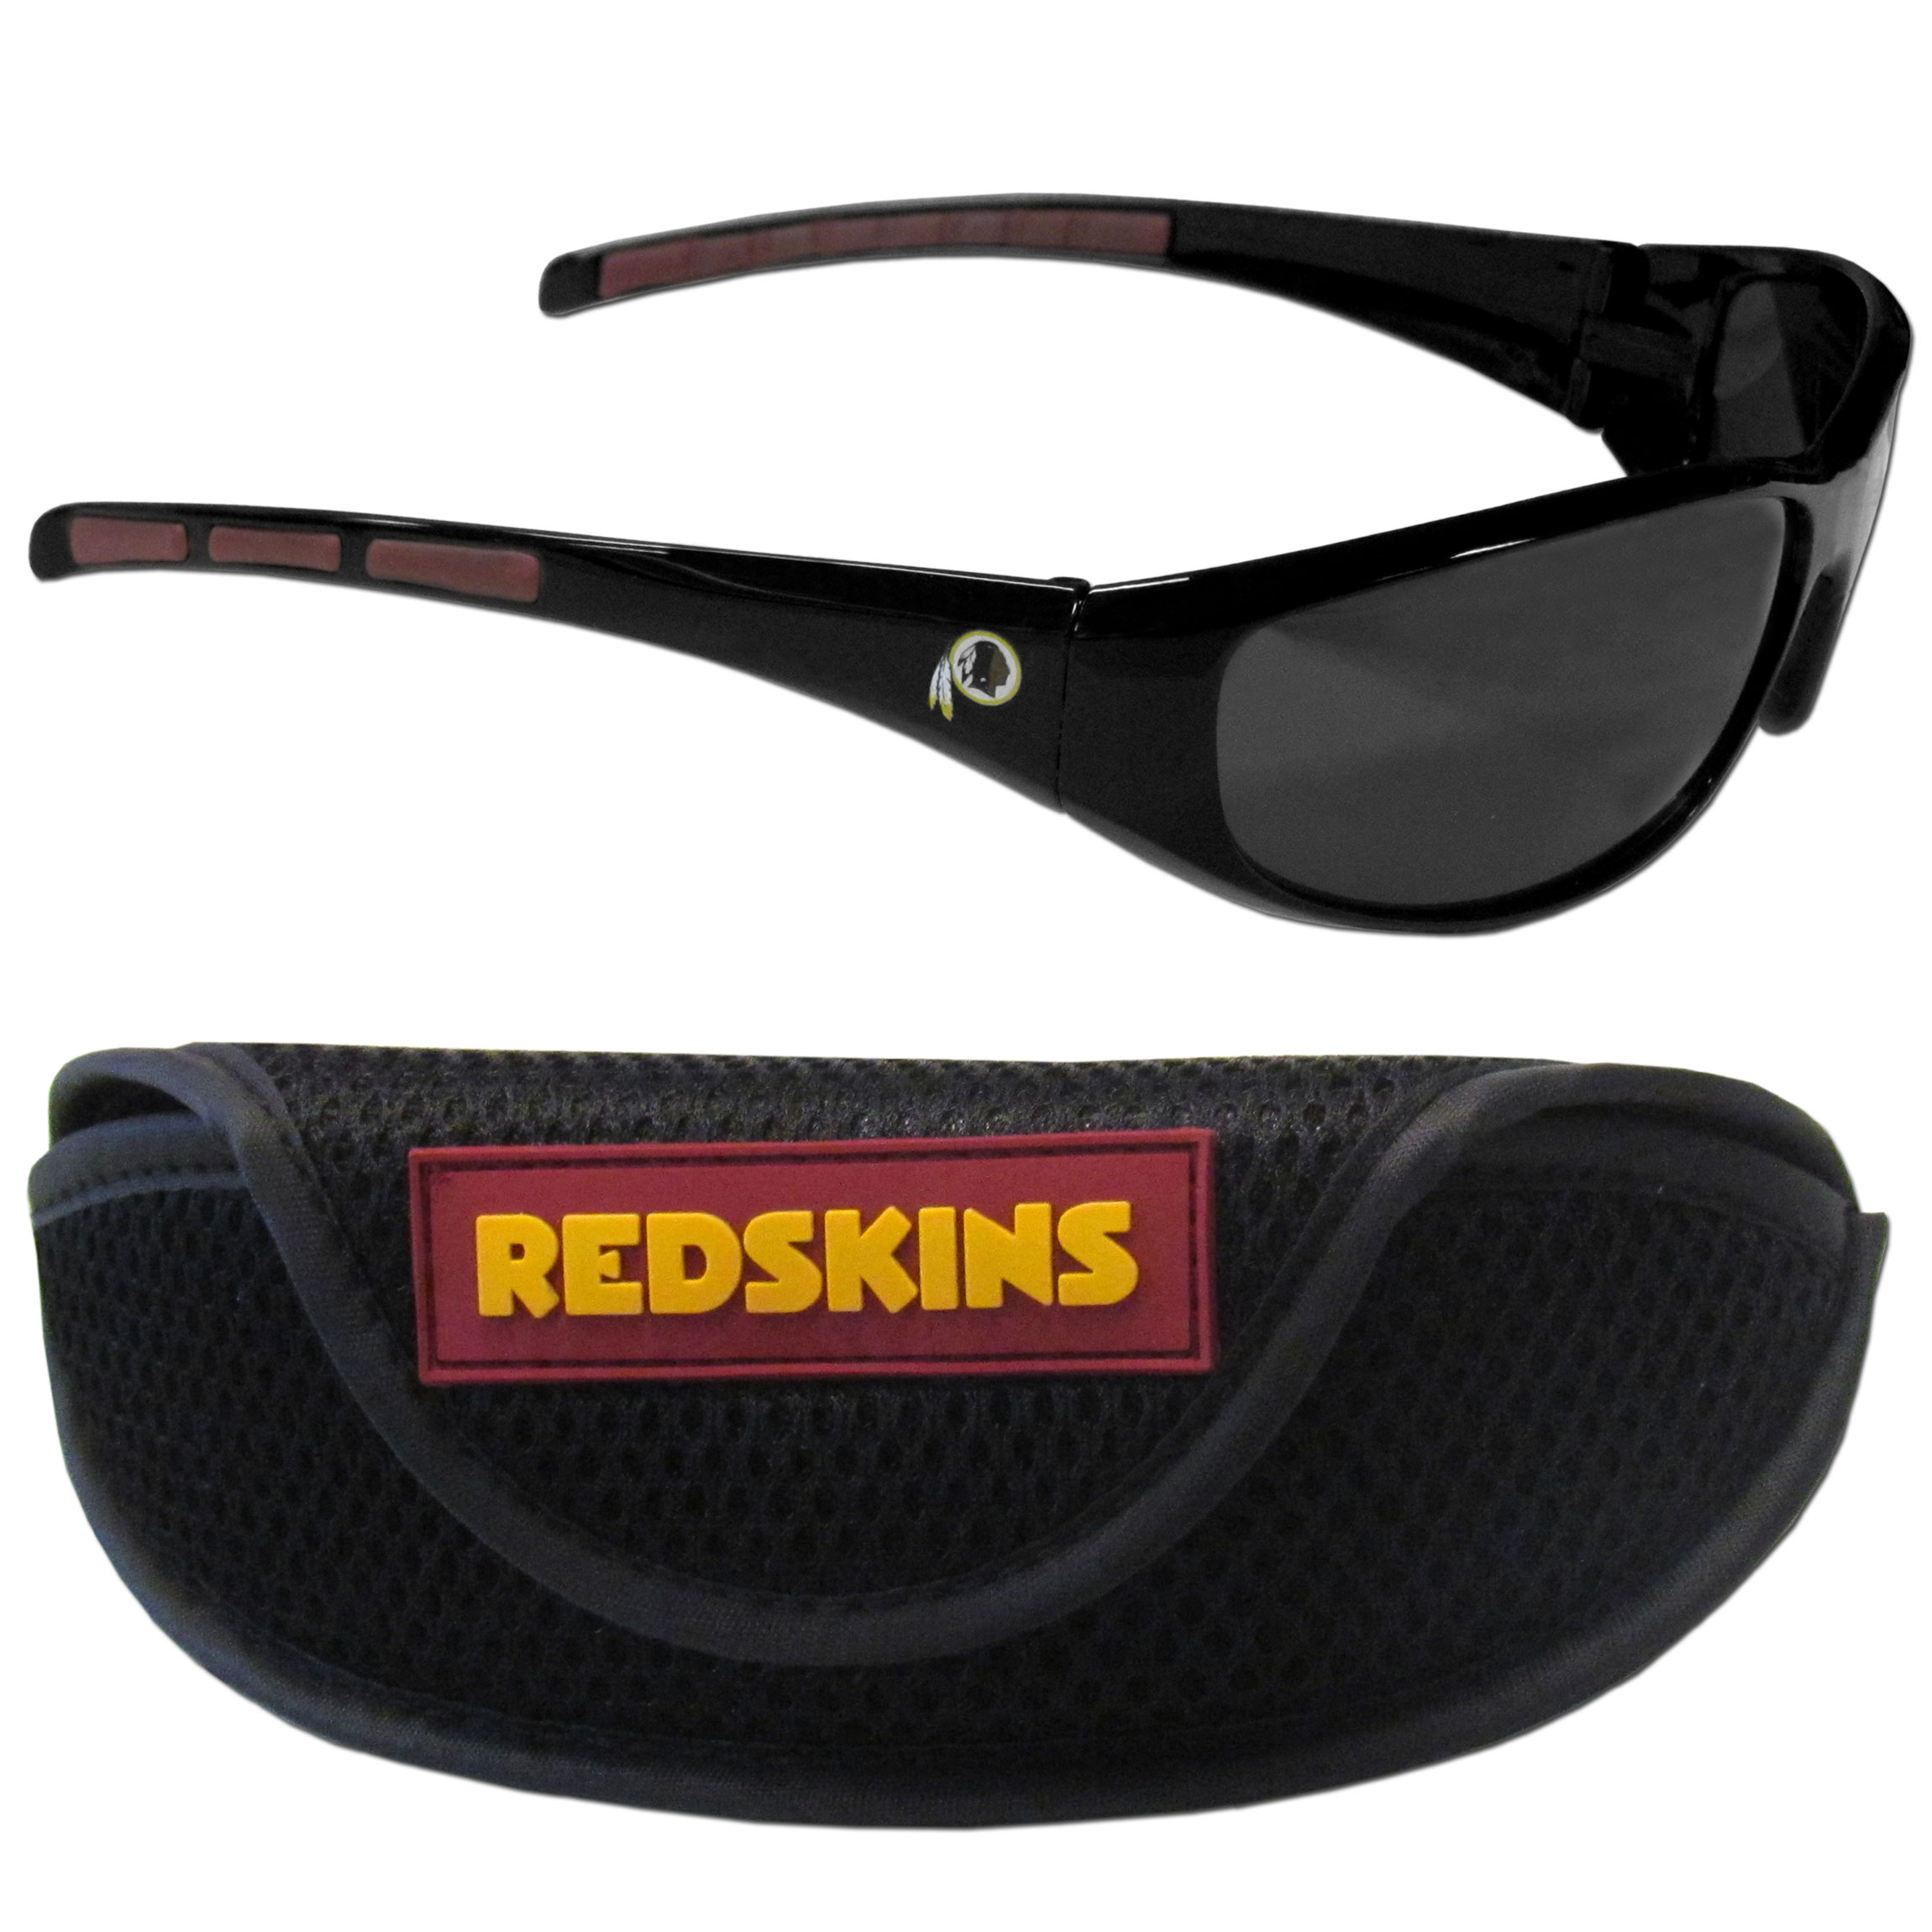 Washington Redskins Wrap Sunglass and Case Set - This great set includes a high quality pair of Washington Redskins wrap sunglasses and sport carrying case.